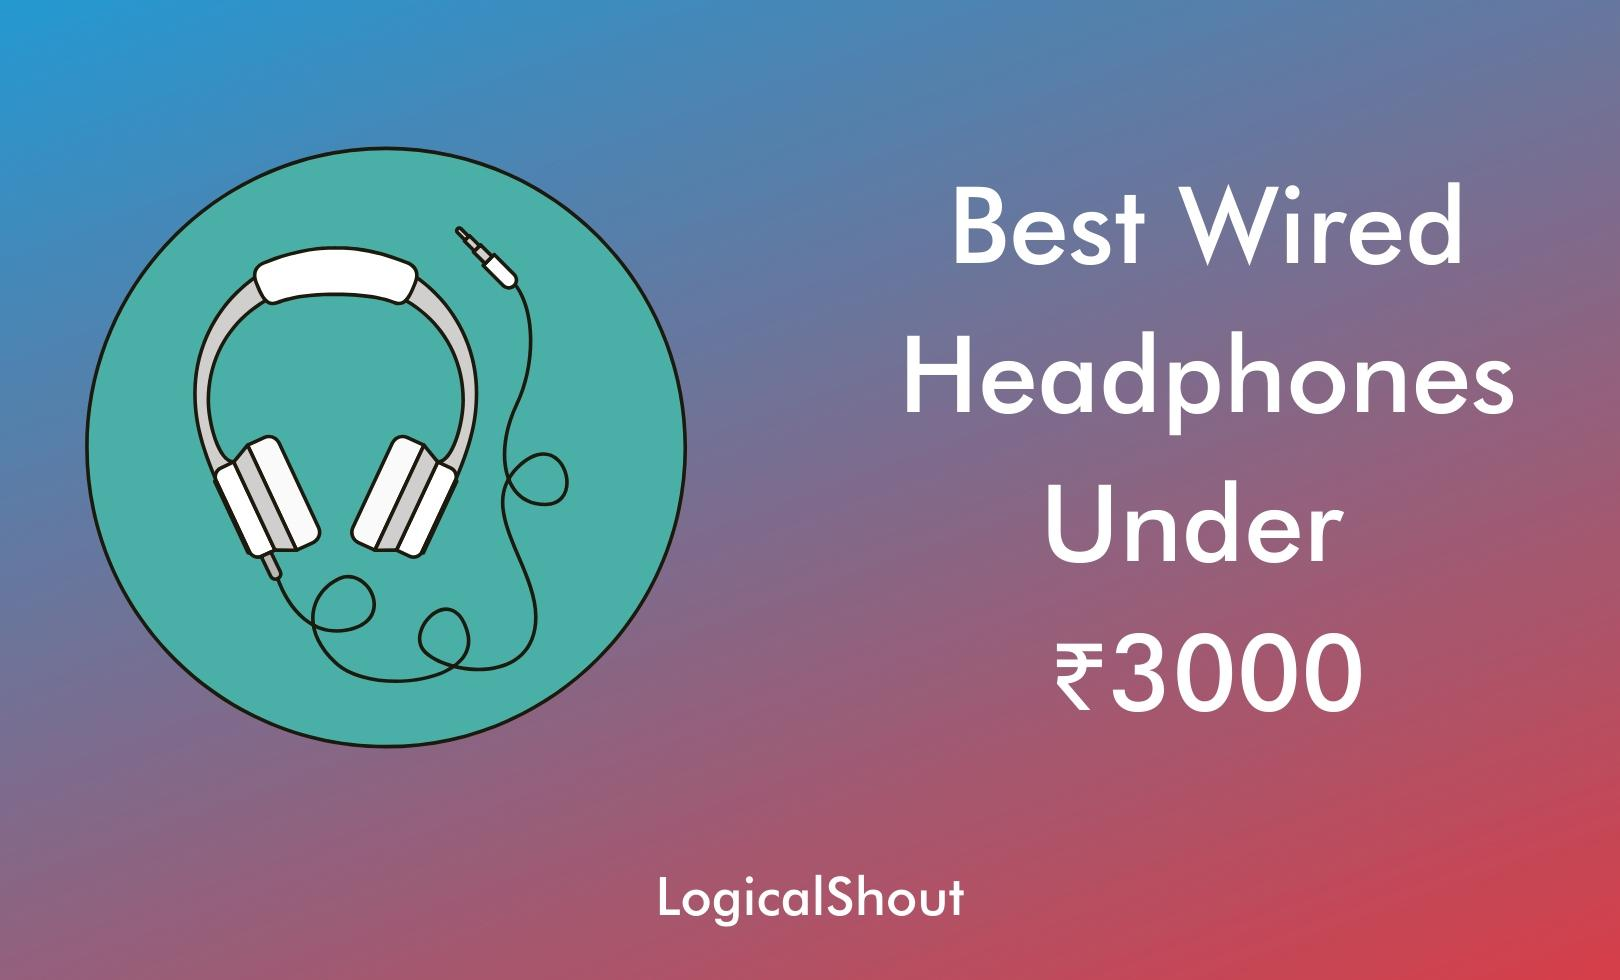 Best Wired Headphones Under 3000